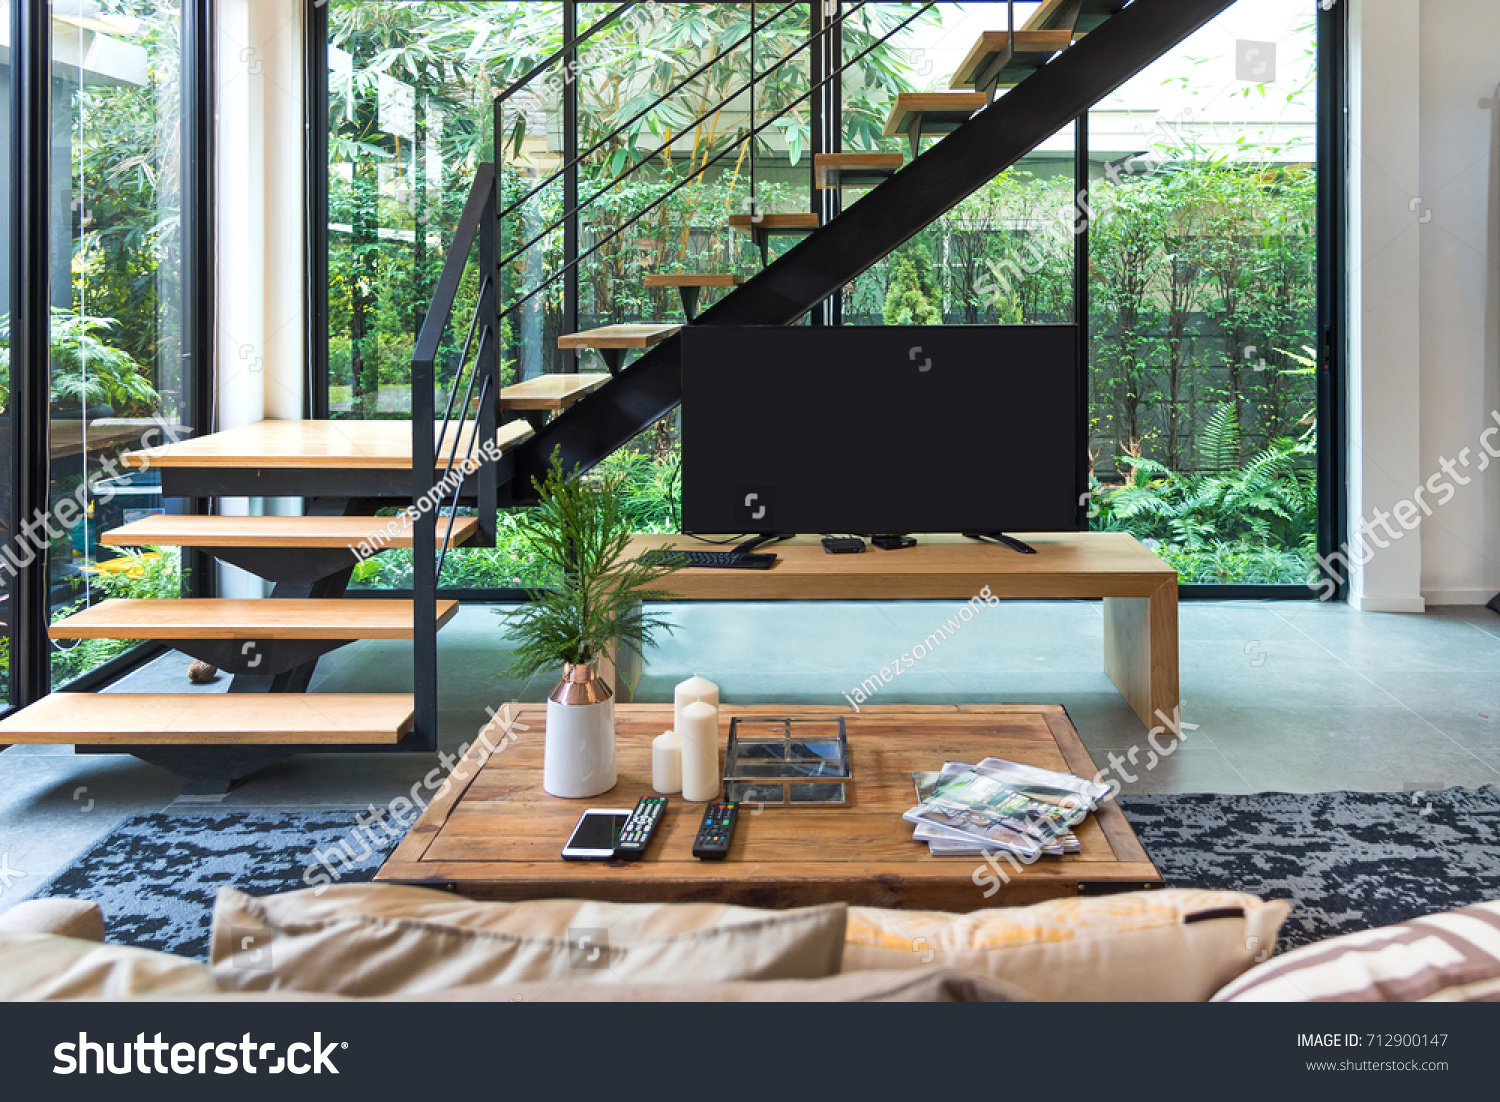 Living Room Tv Stairs Wooden Shelves Stock Photo Edit Now 712900147